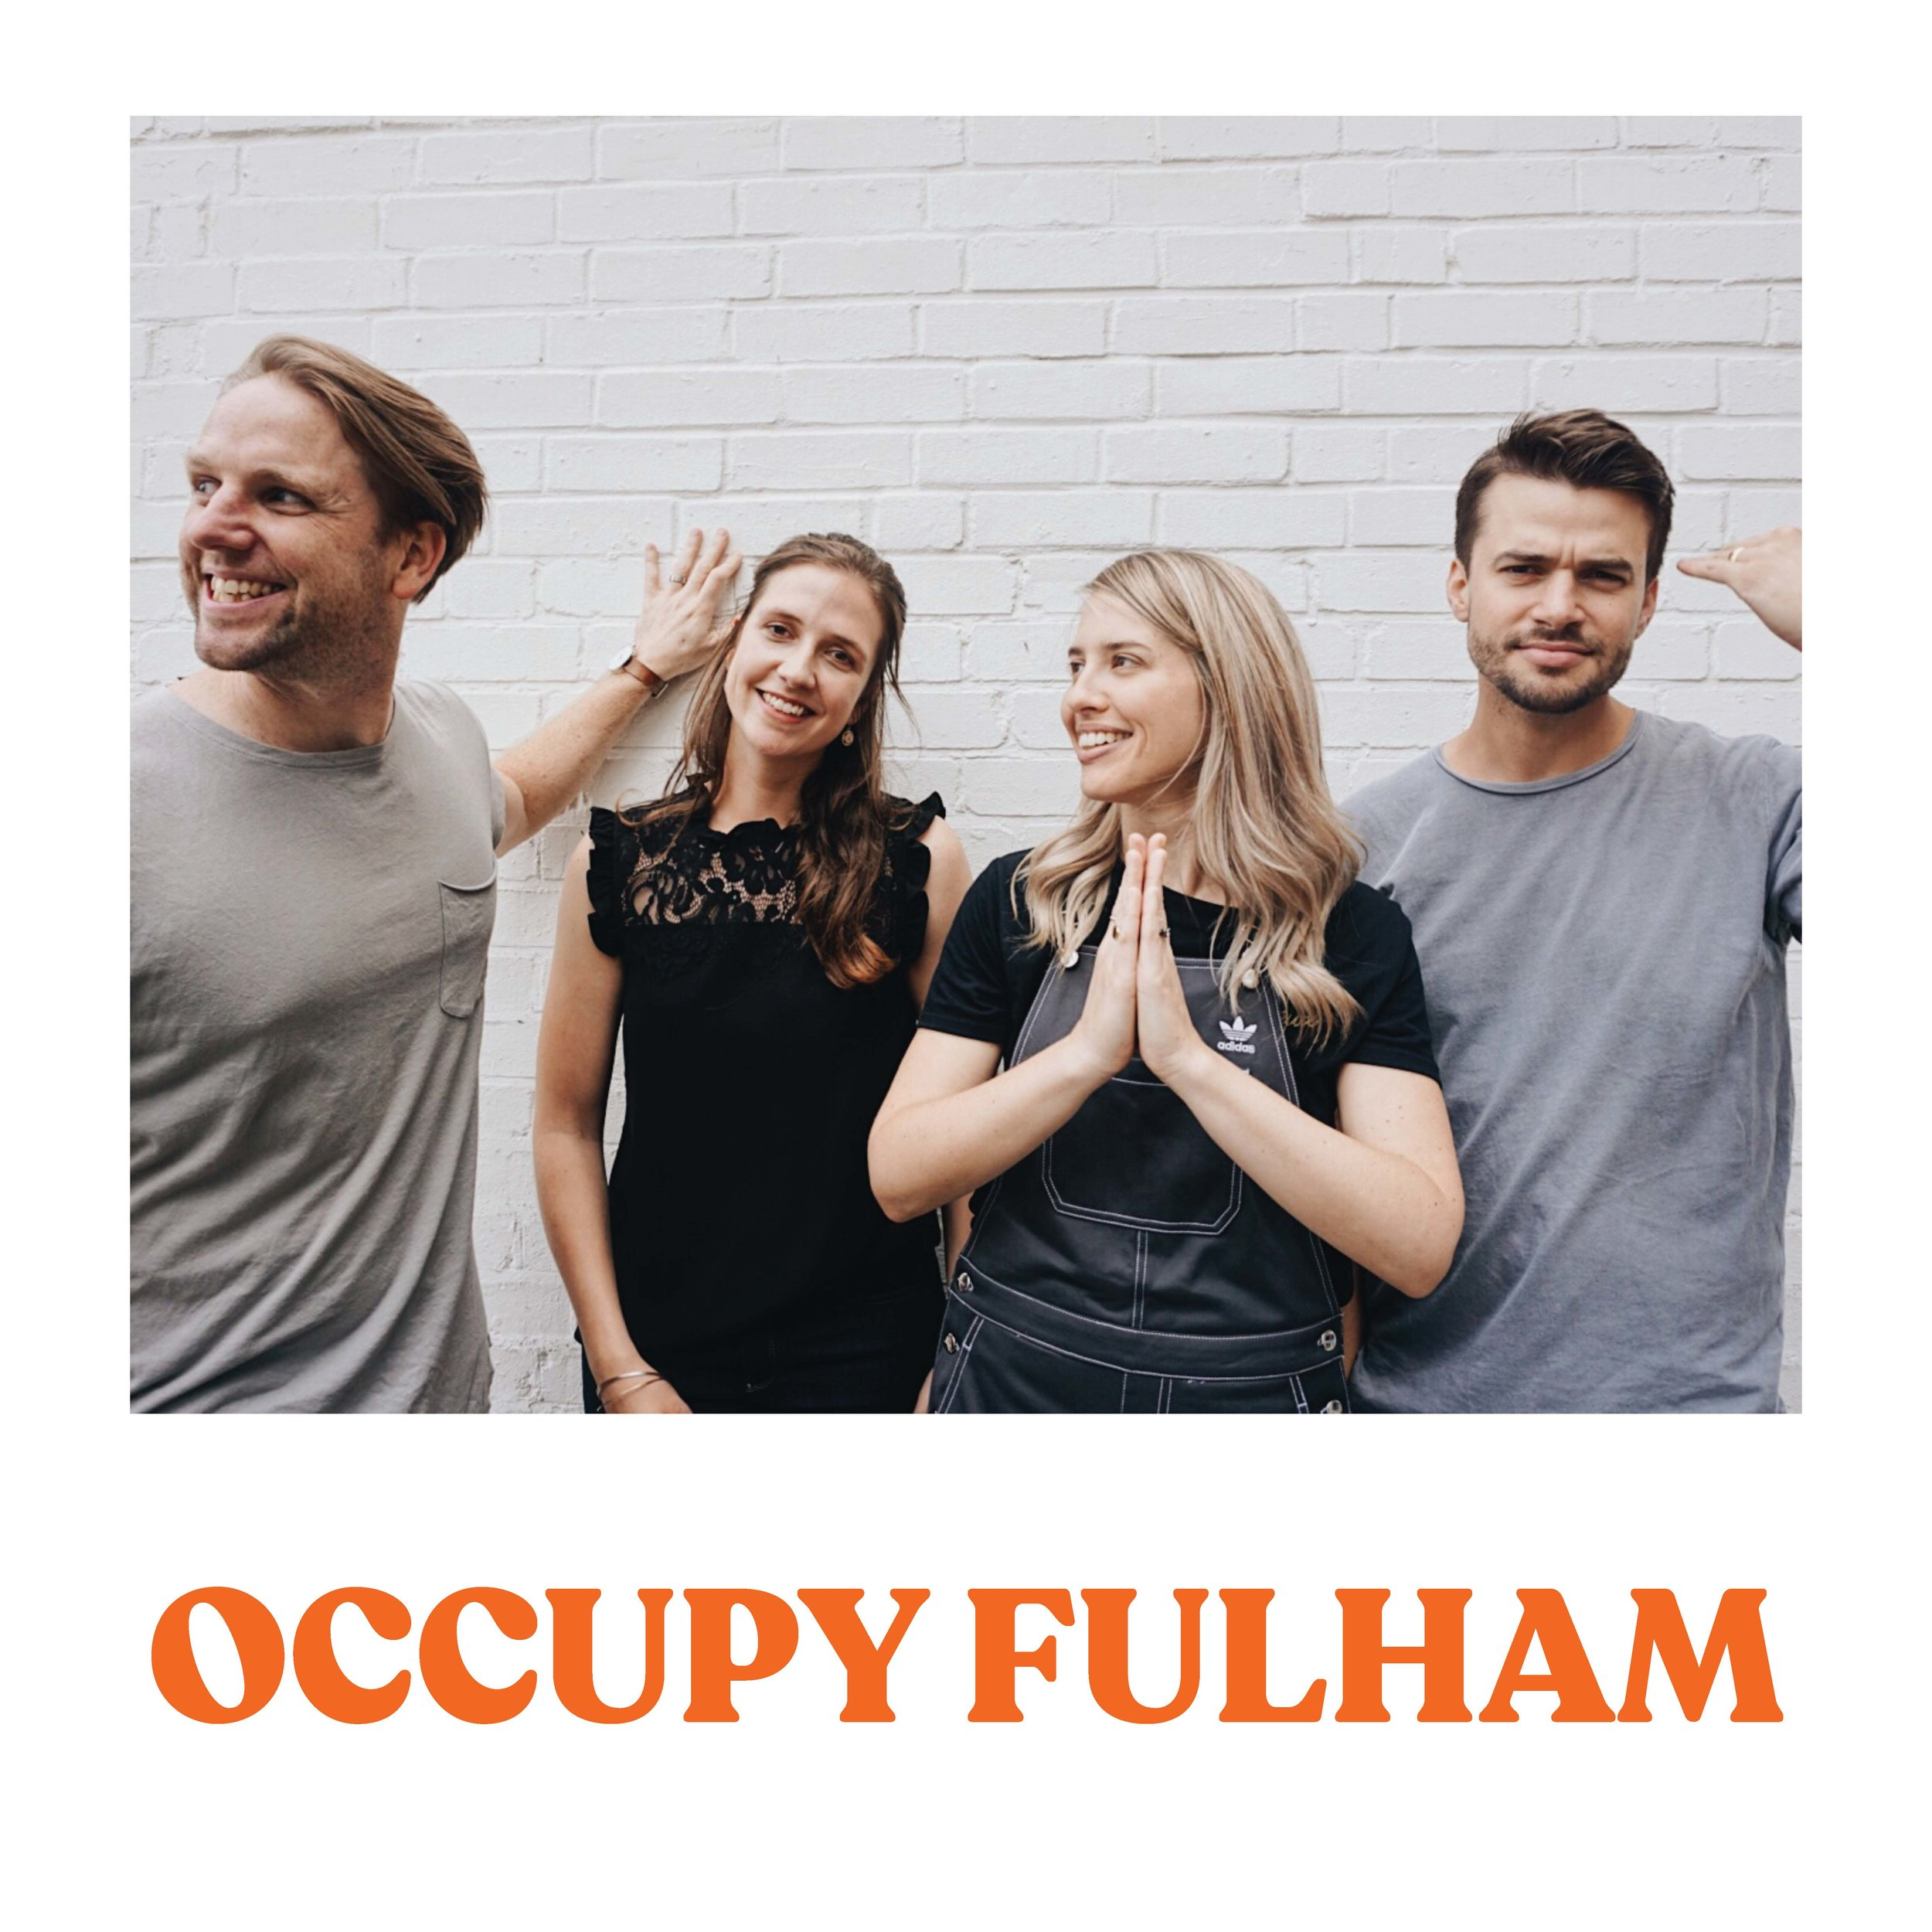 OCCUPY FULHAM    Fortnightly Wednesday mornings 630-730am Parsons Green   Phil Hubbard Every place on which the sole of your foot shall tread! Morning prayer walk around the streets of our borough. Let's go!  Contact: Phil  philmhubbard@gmail.com